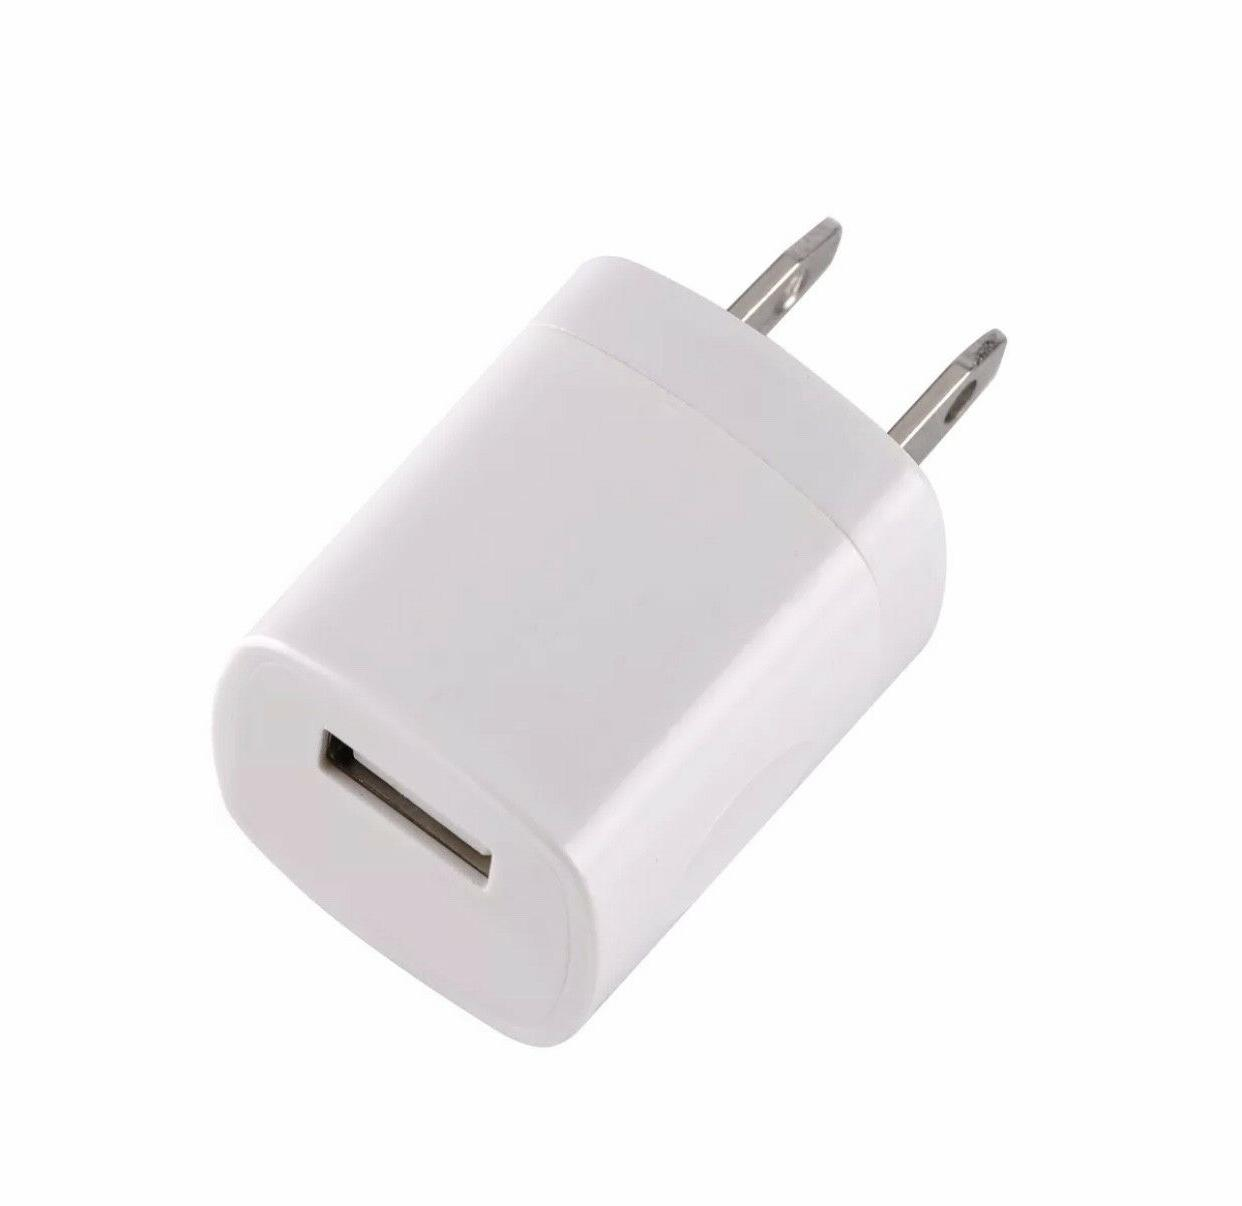 Wall Charger 3FT USB Cable Car Tablets